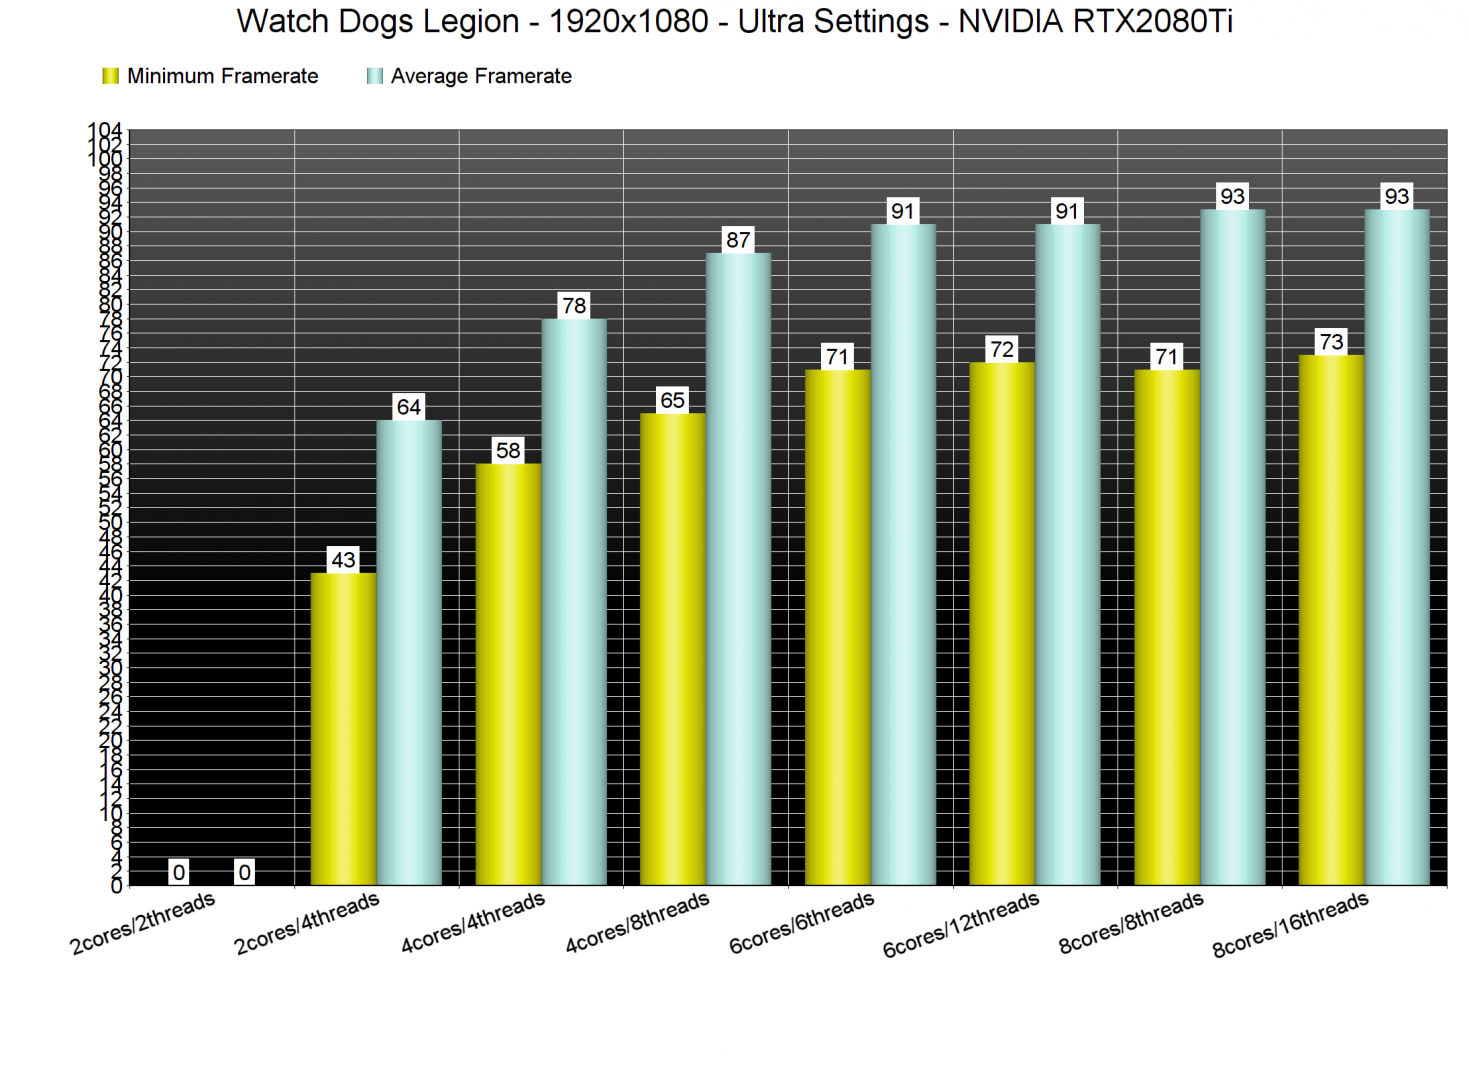 Watch Dogs Legion CPU benchmarks-1